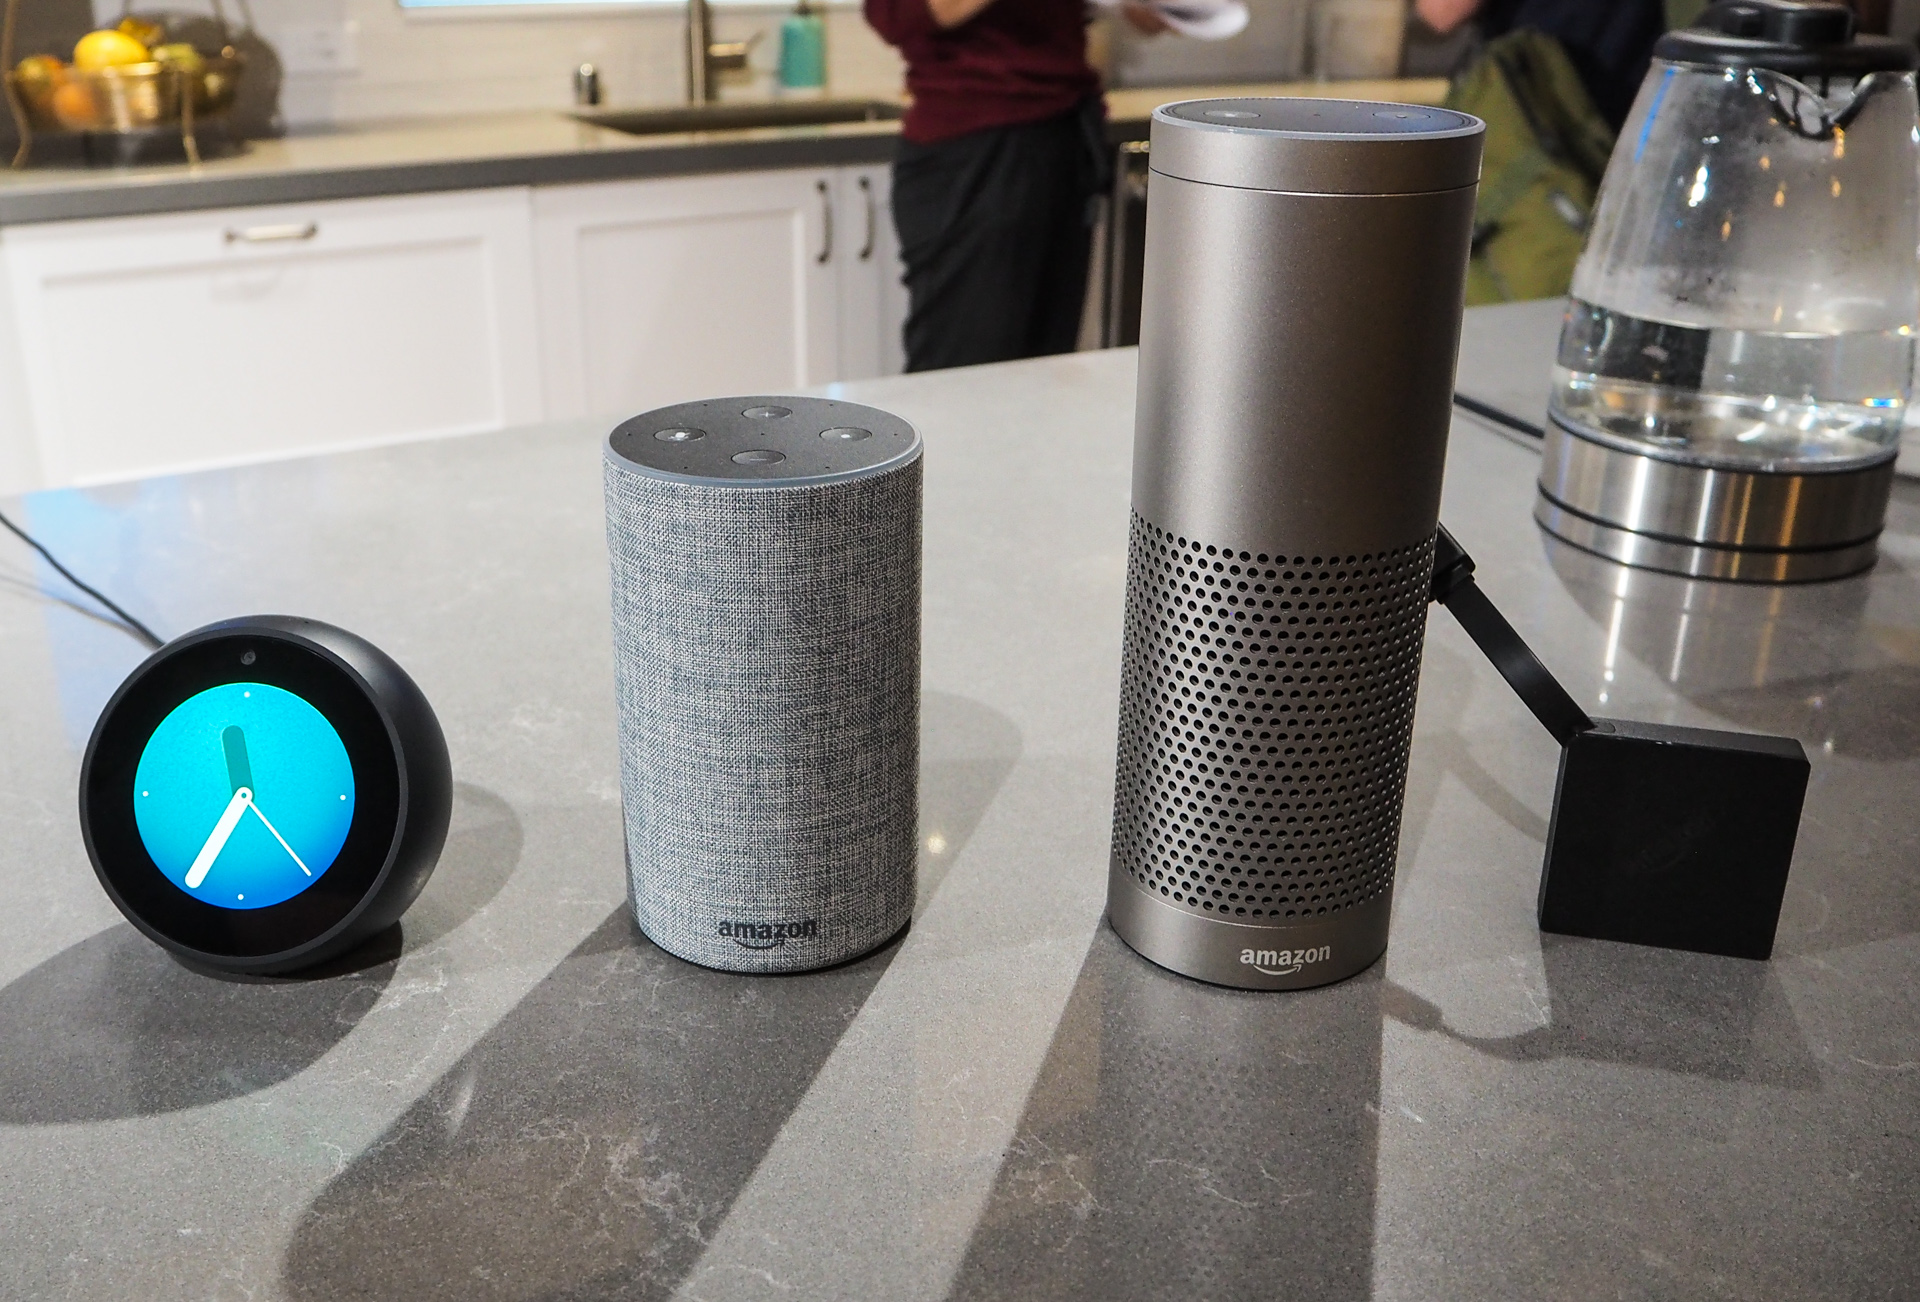 Amazon's innovative Echo Look is finally available for anyone to buy